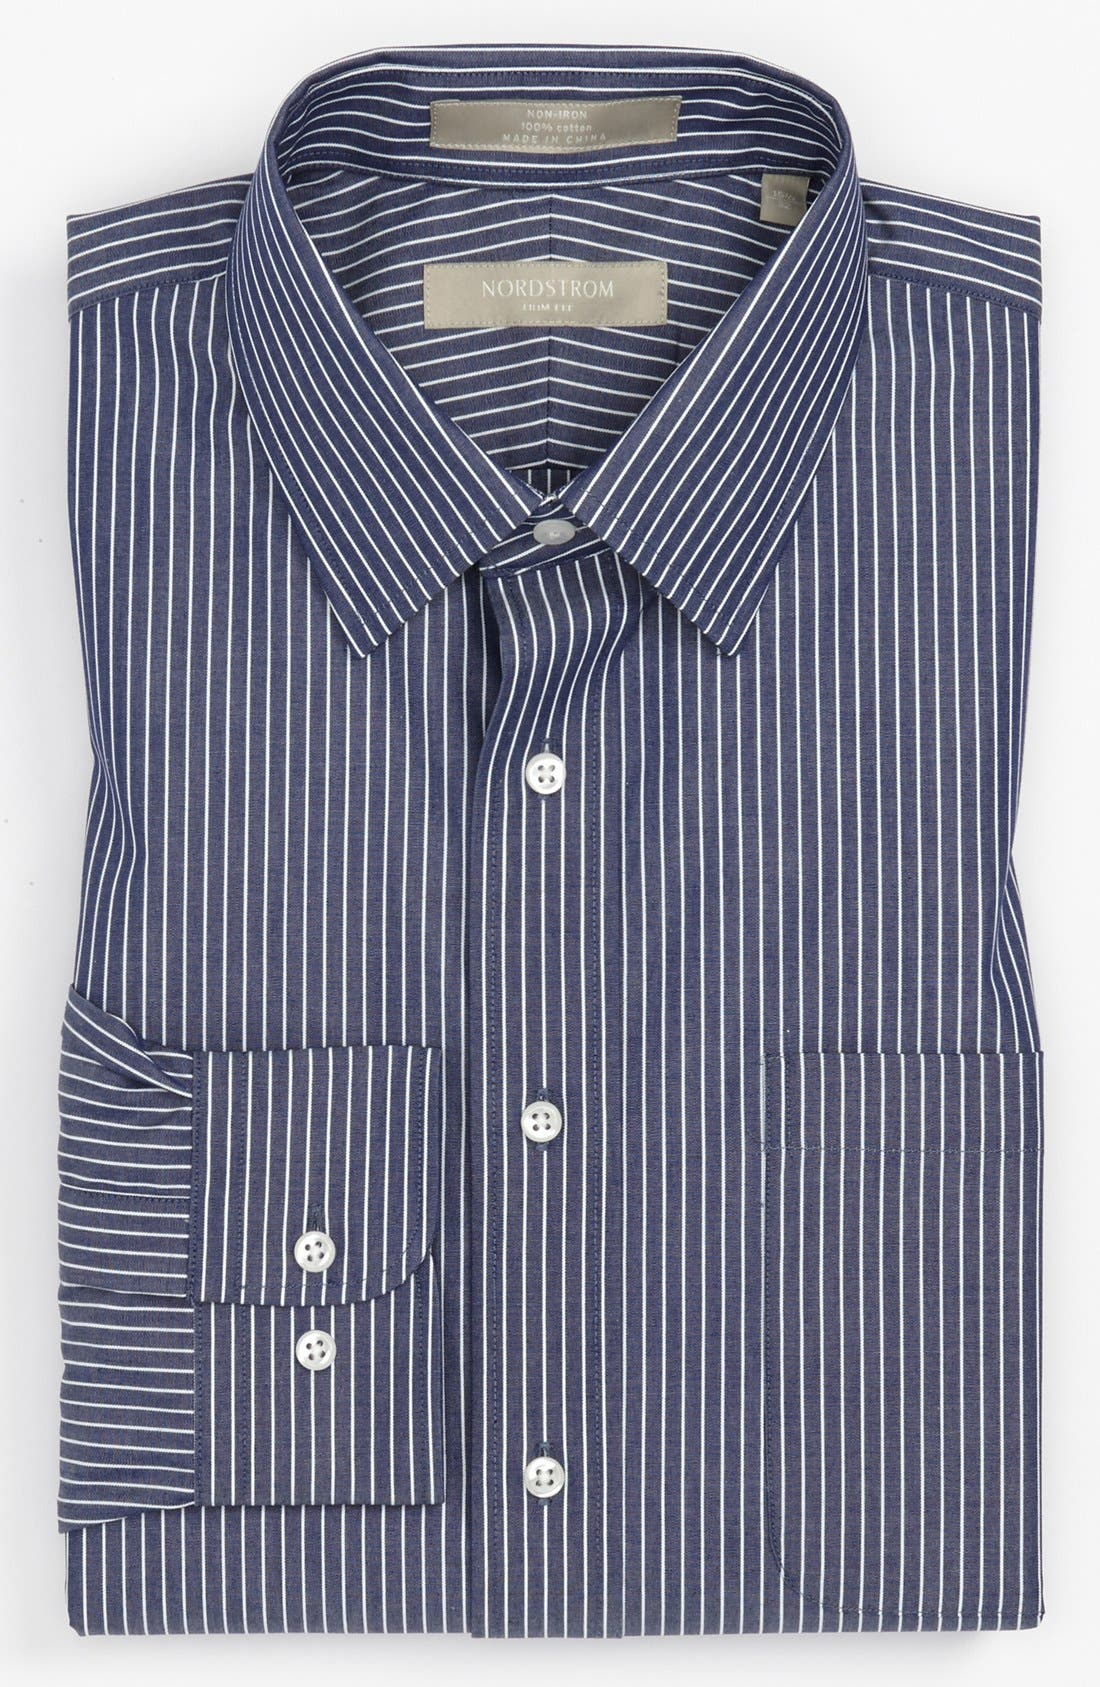 Alternate Image 1 Selected - Nordstrom Trim Fit Non-Iron Dress Shirt